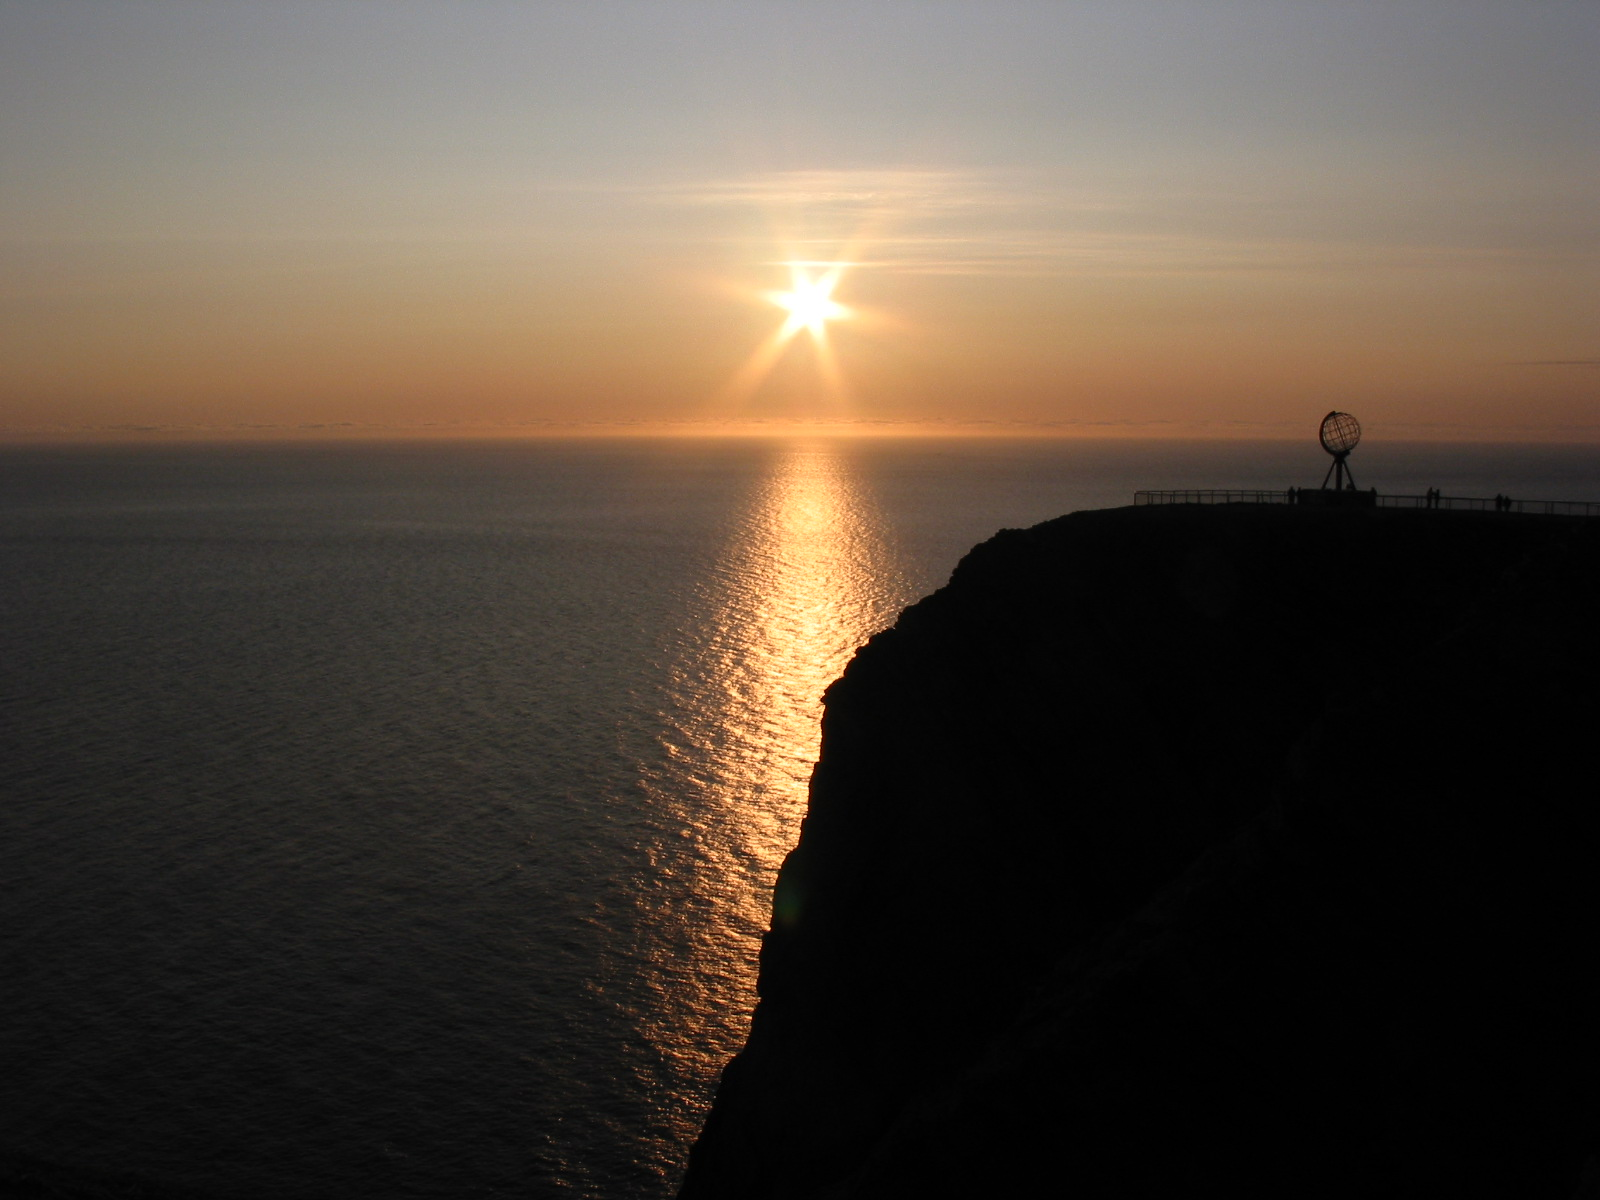 The midnight sun at Nordkapp, Norway.